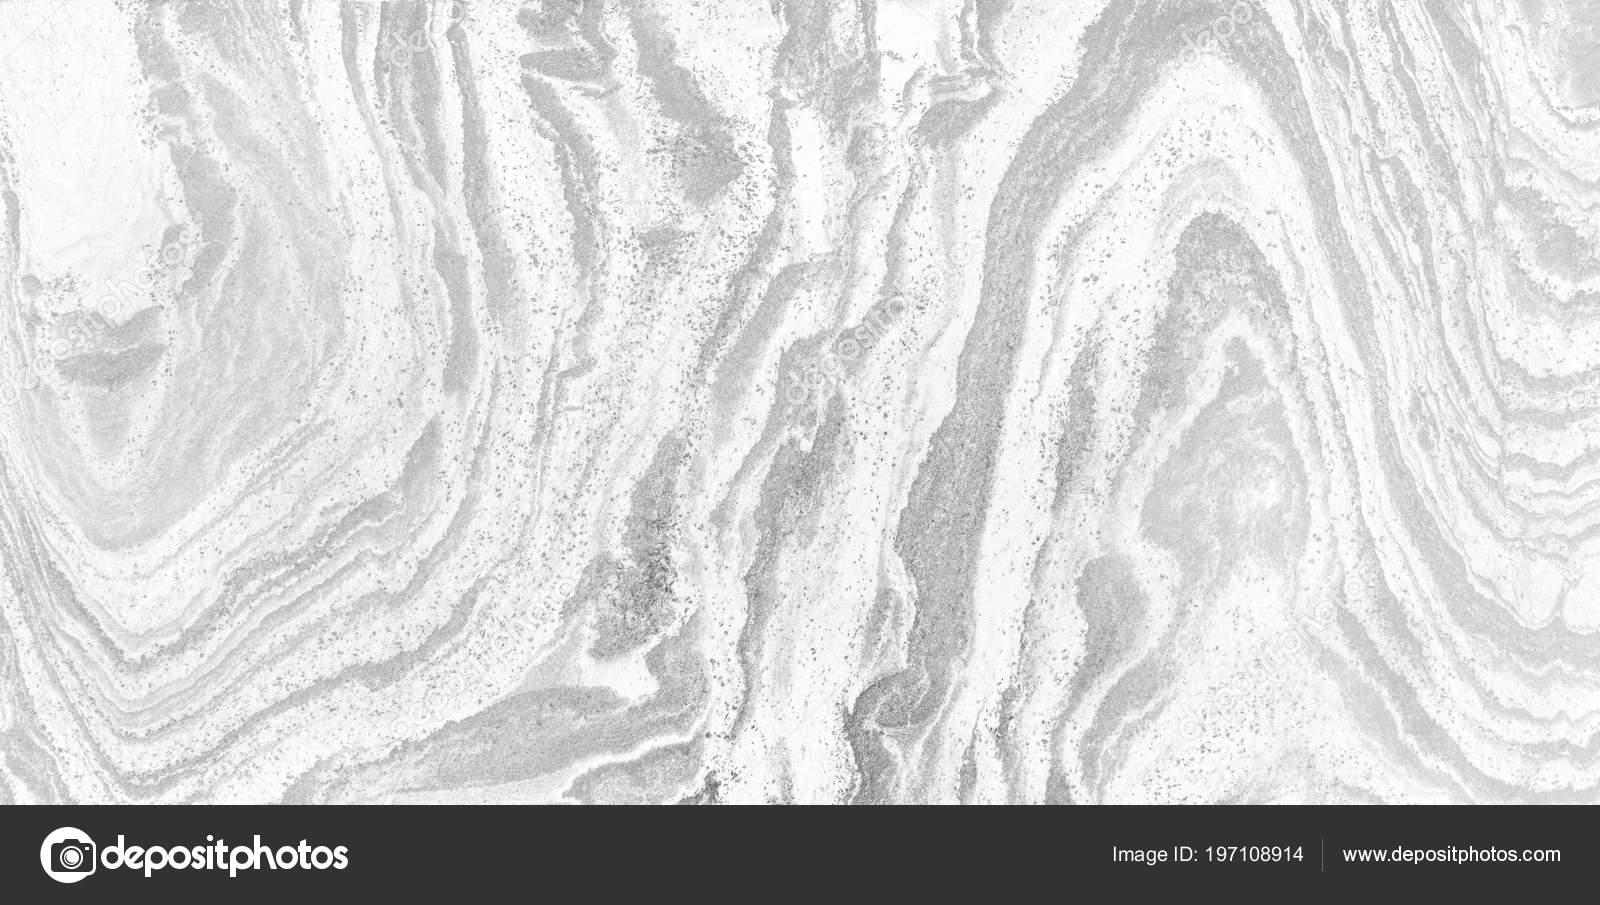 Abstract Background White Grey Marble Texture Wall Natural Pattern Luxury Stock Photo C Tawanlubfah 197108914